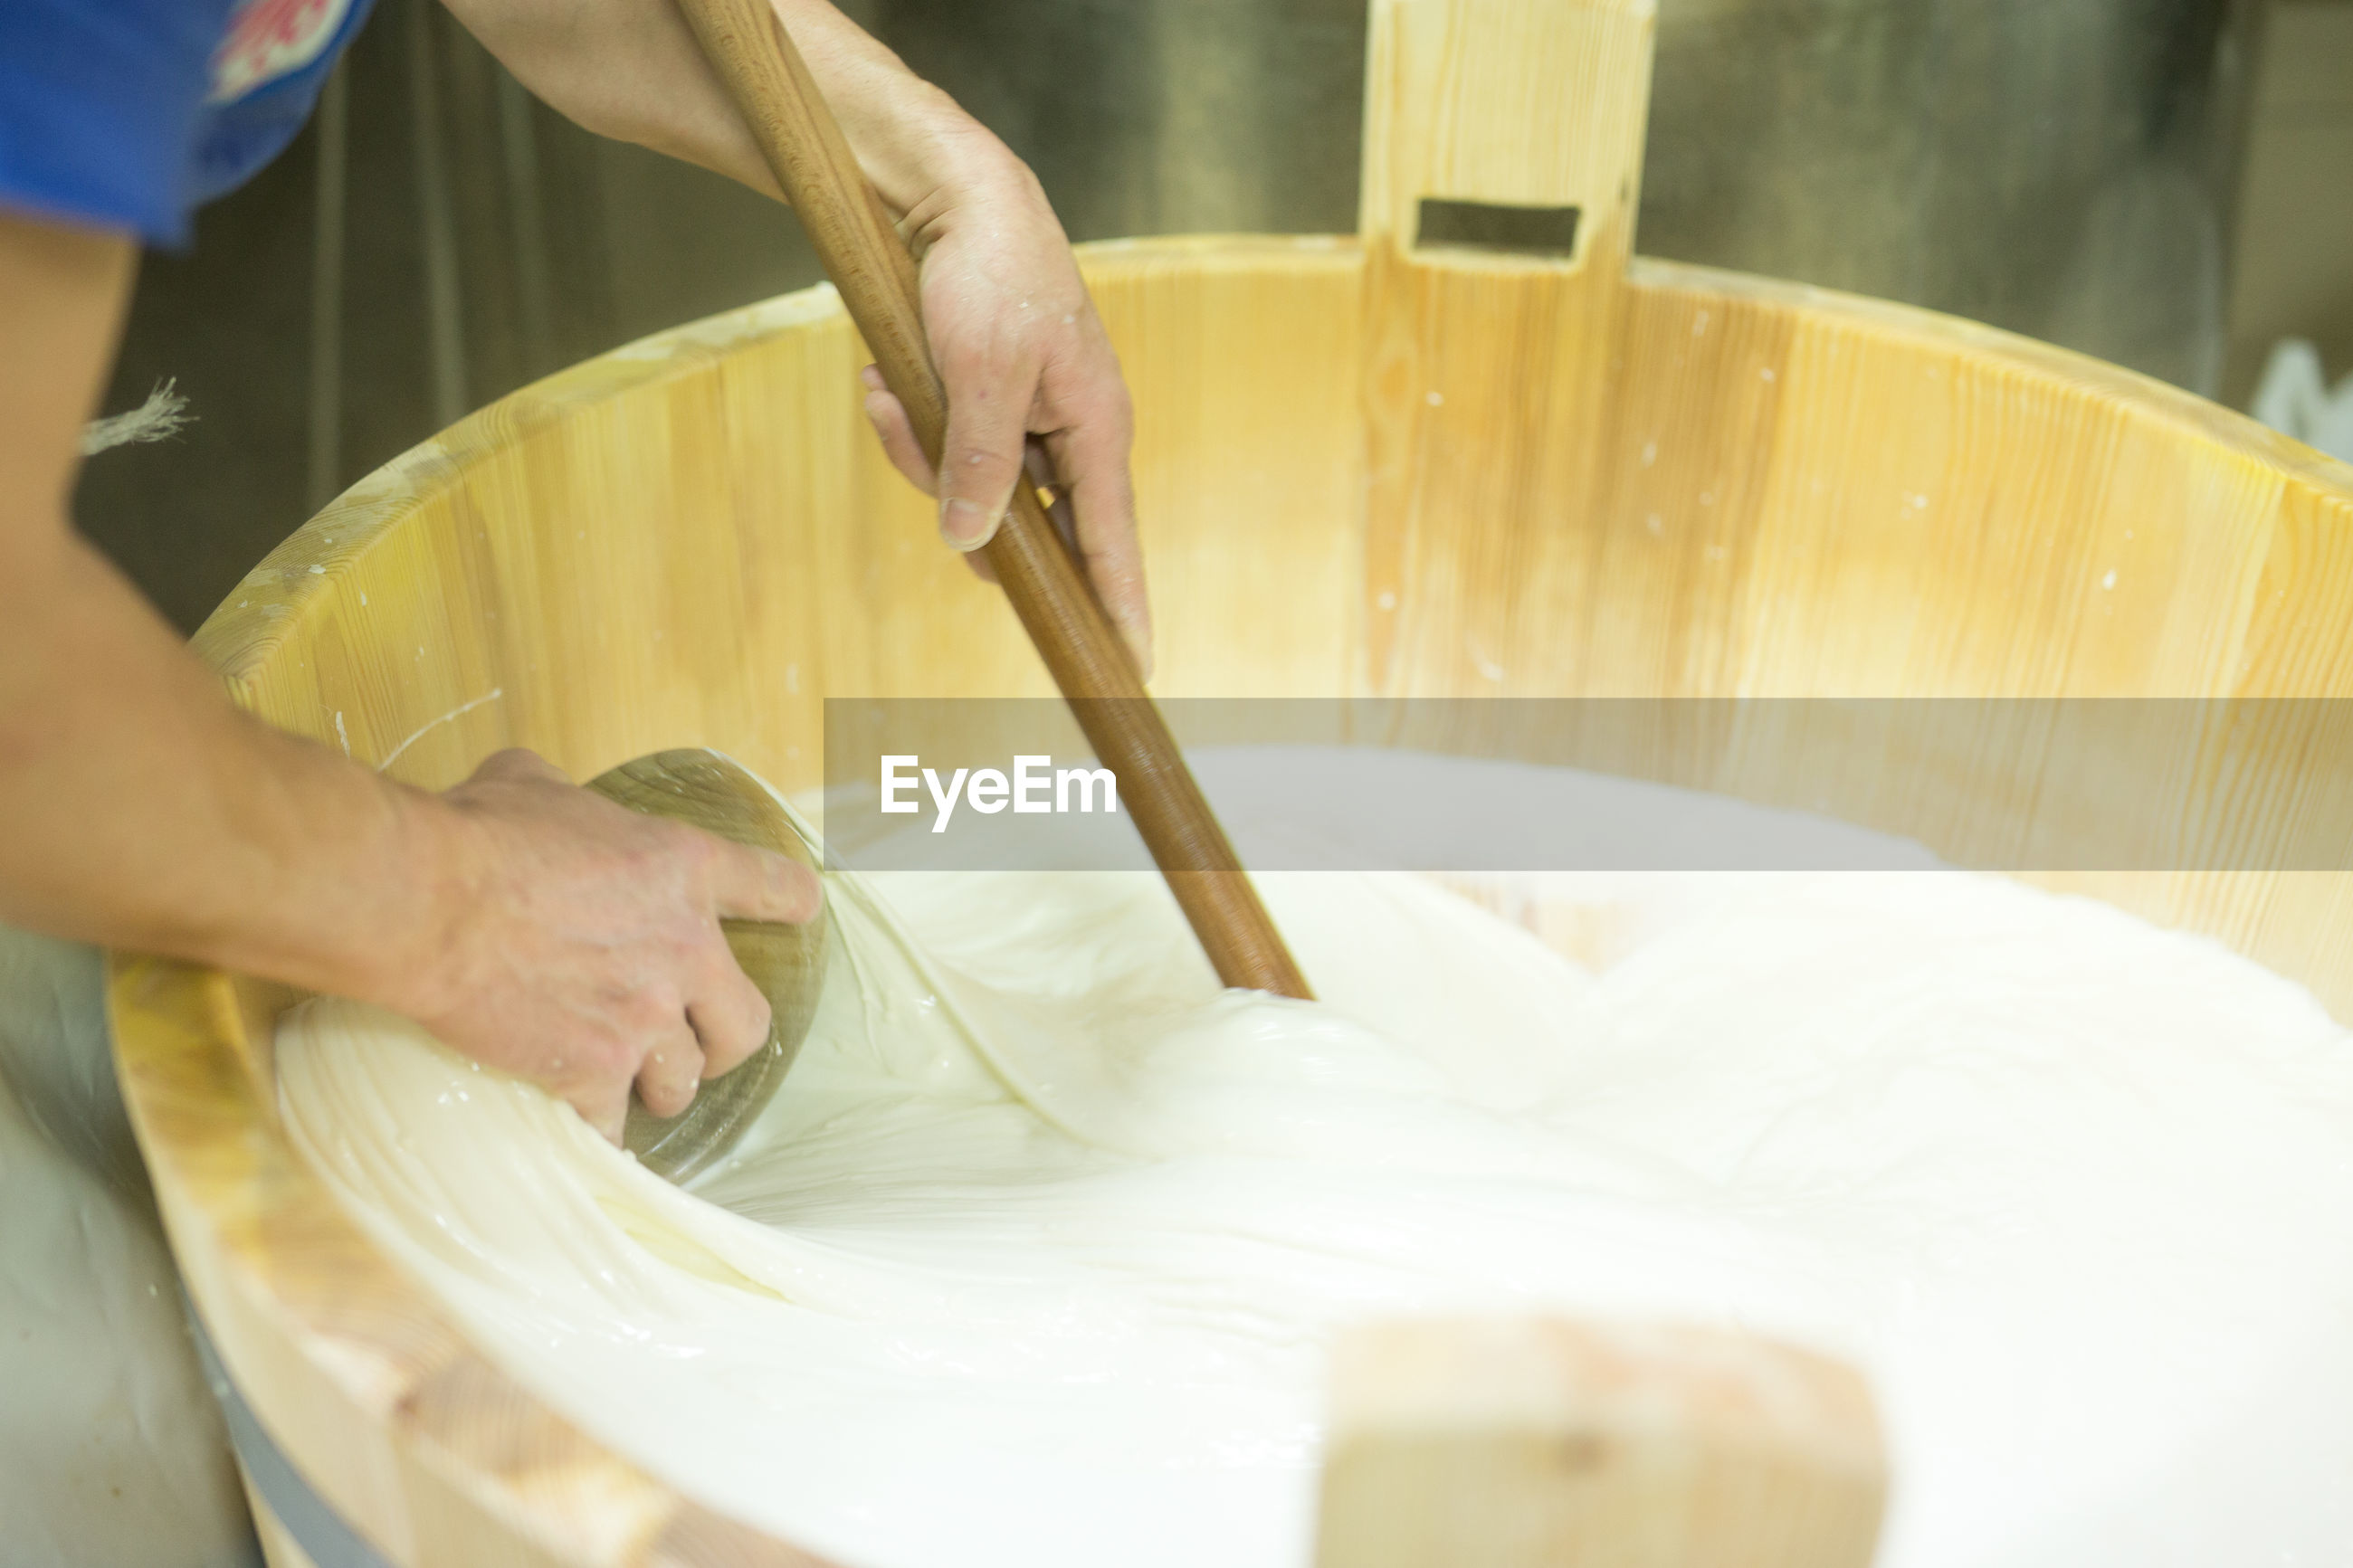 High angle view of worker mixing mozzarella cheese with ladle in wooden container at factory